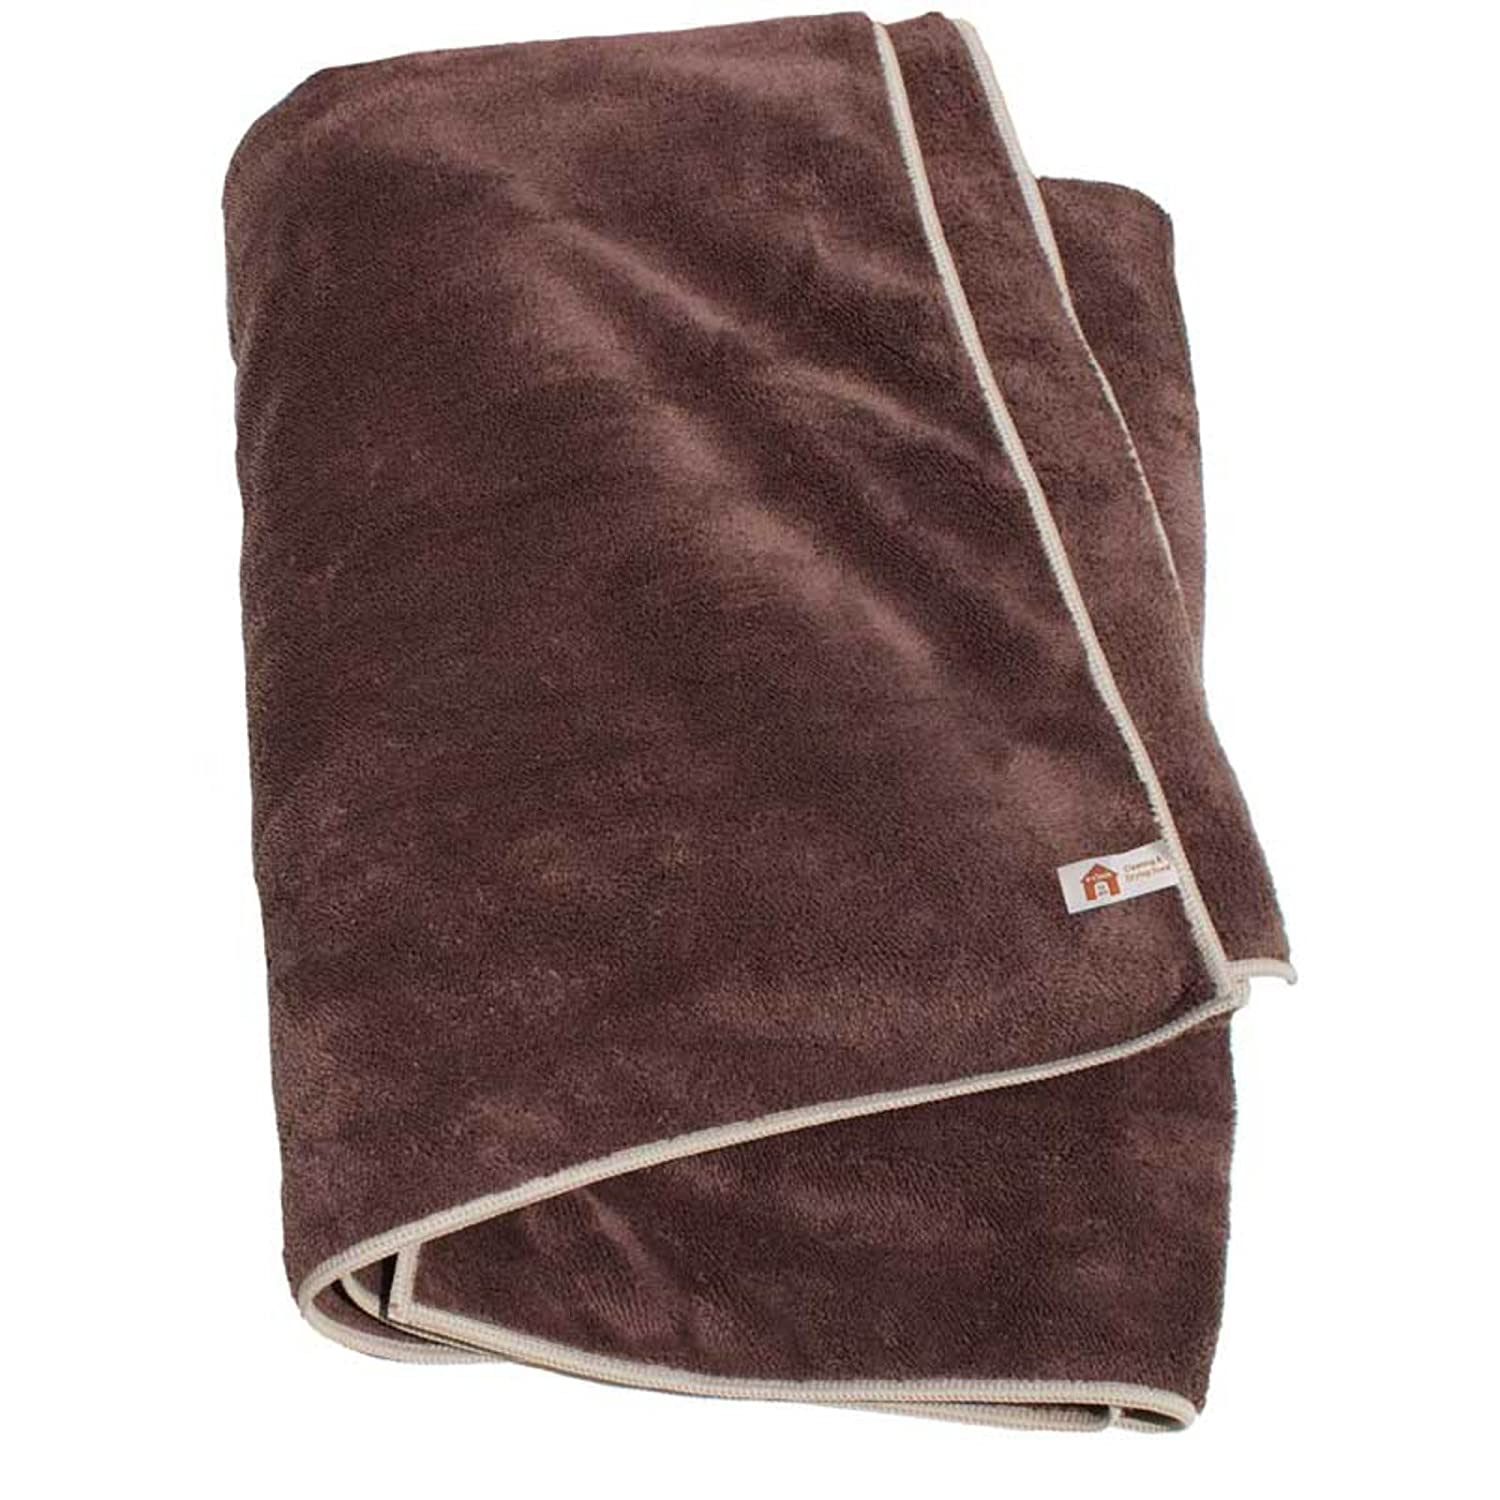 E-Cloth for Pets Large Cleaning and Drying Towel, Brown